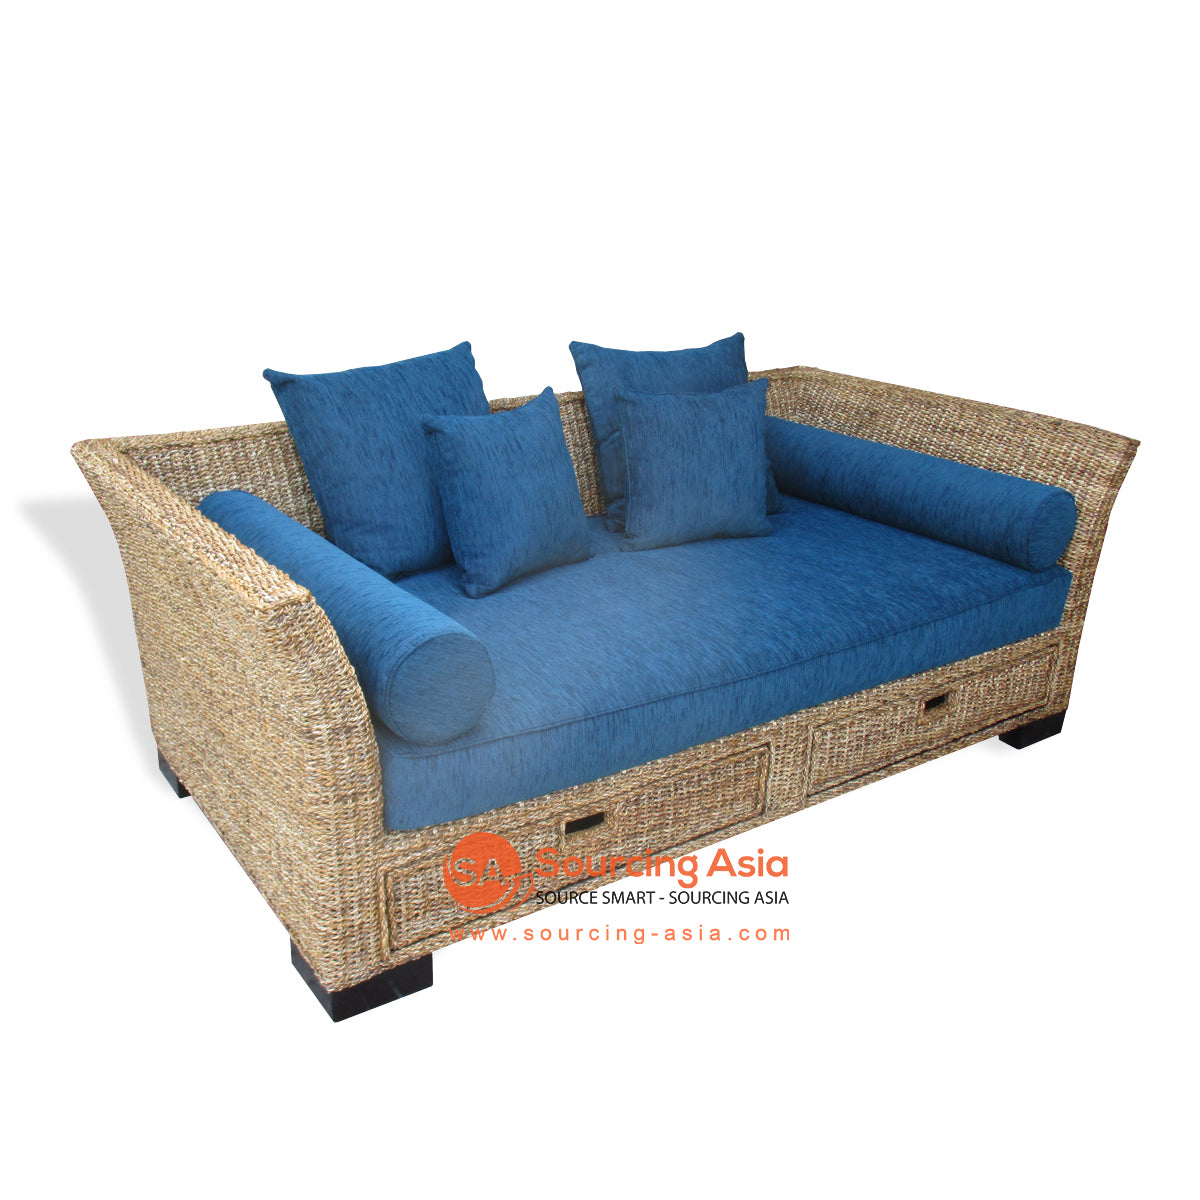 IMAL300-SB-DRW DAYBED SOFA WITH DRAWERS